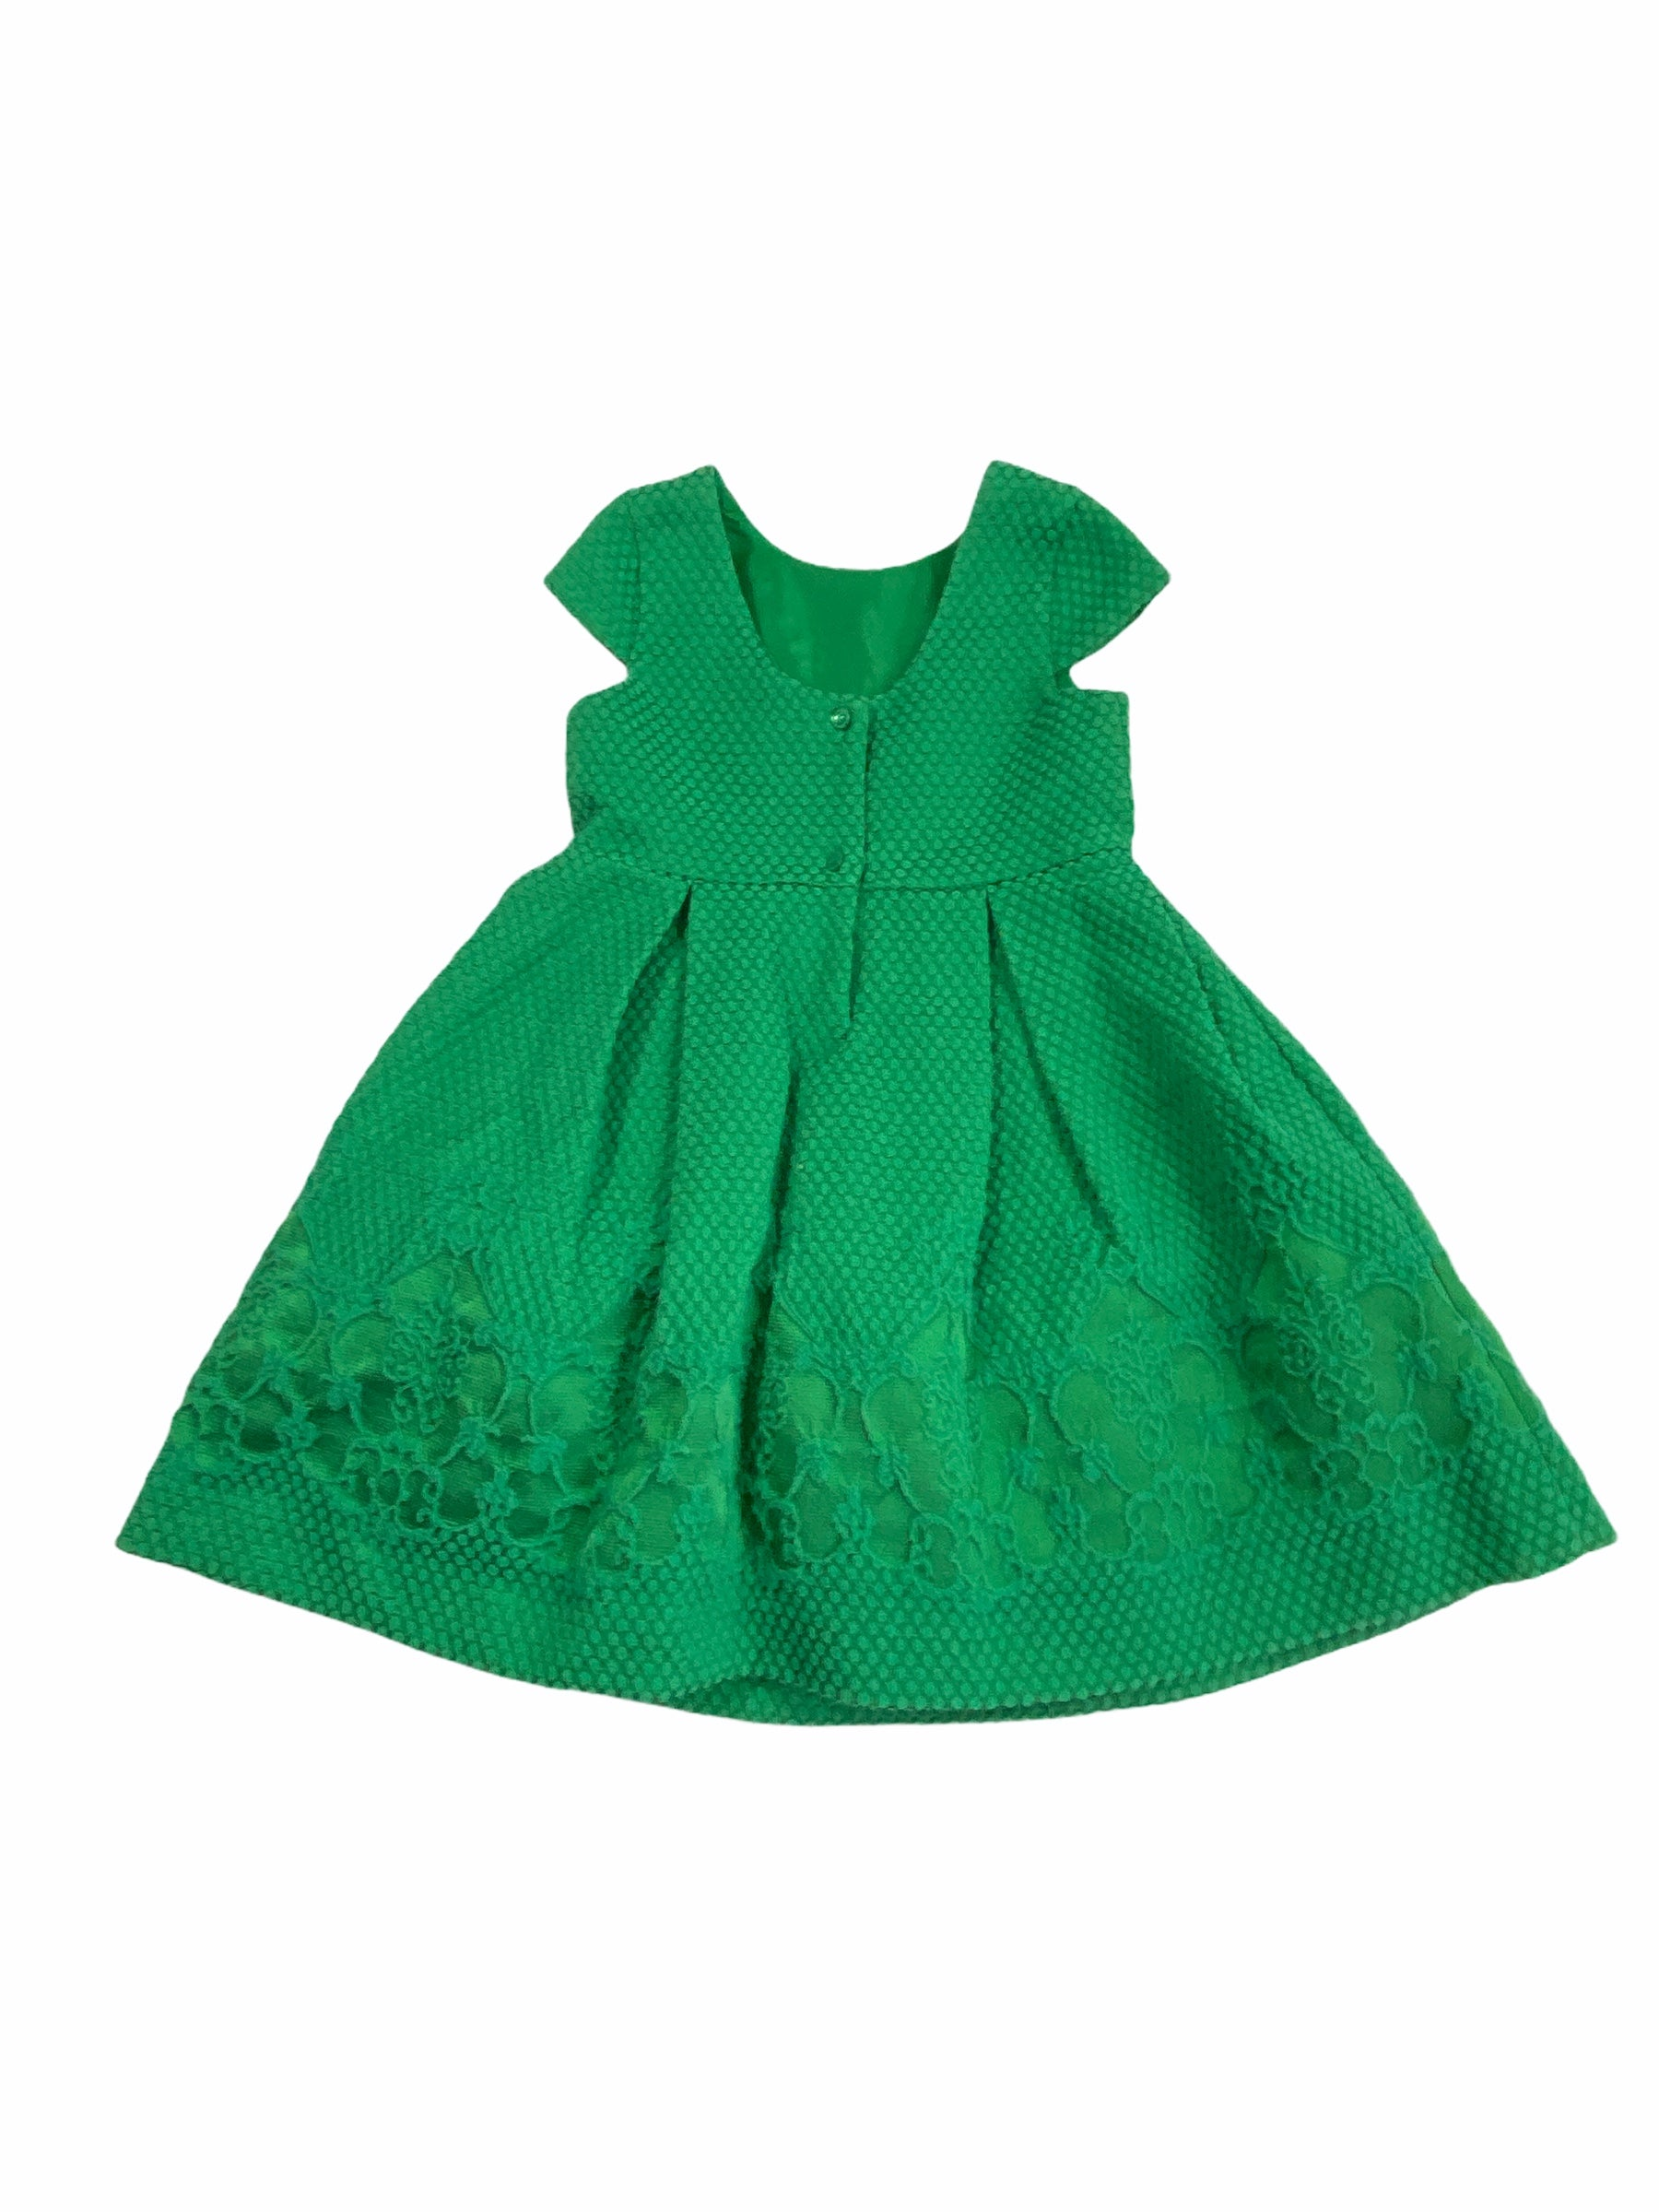 Janie & Jack Green Dress (3 Girls)